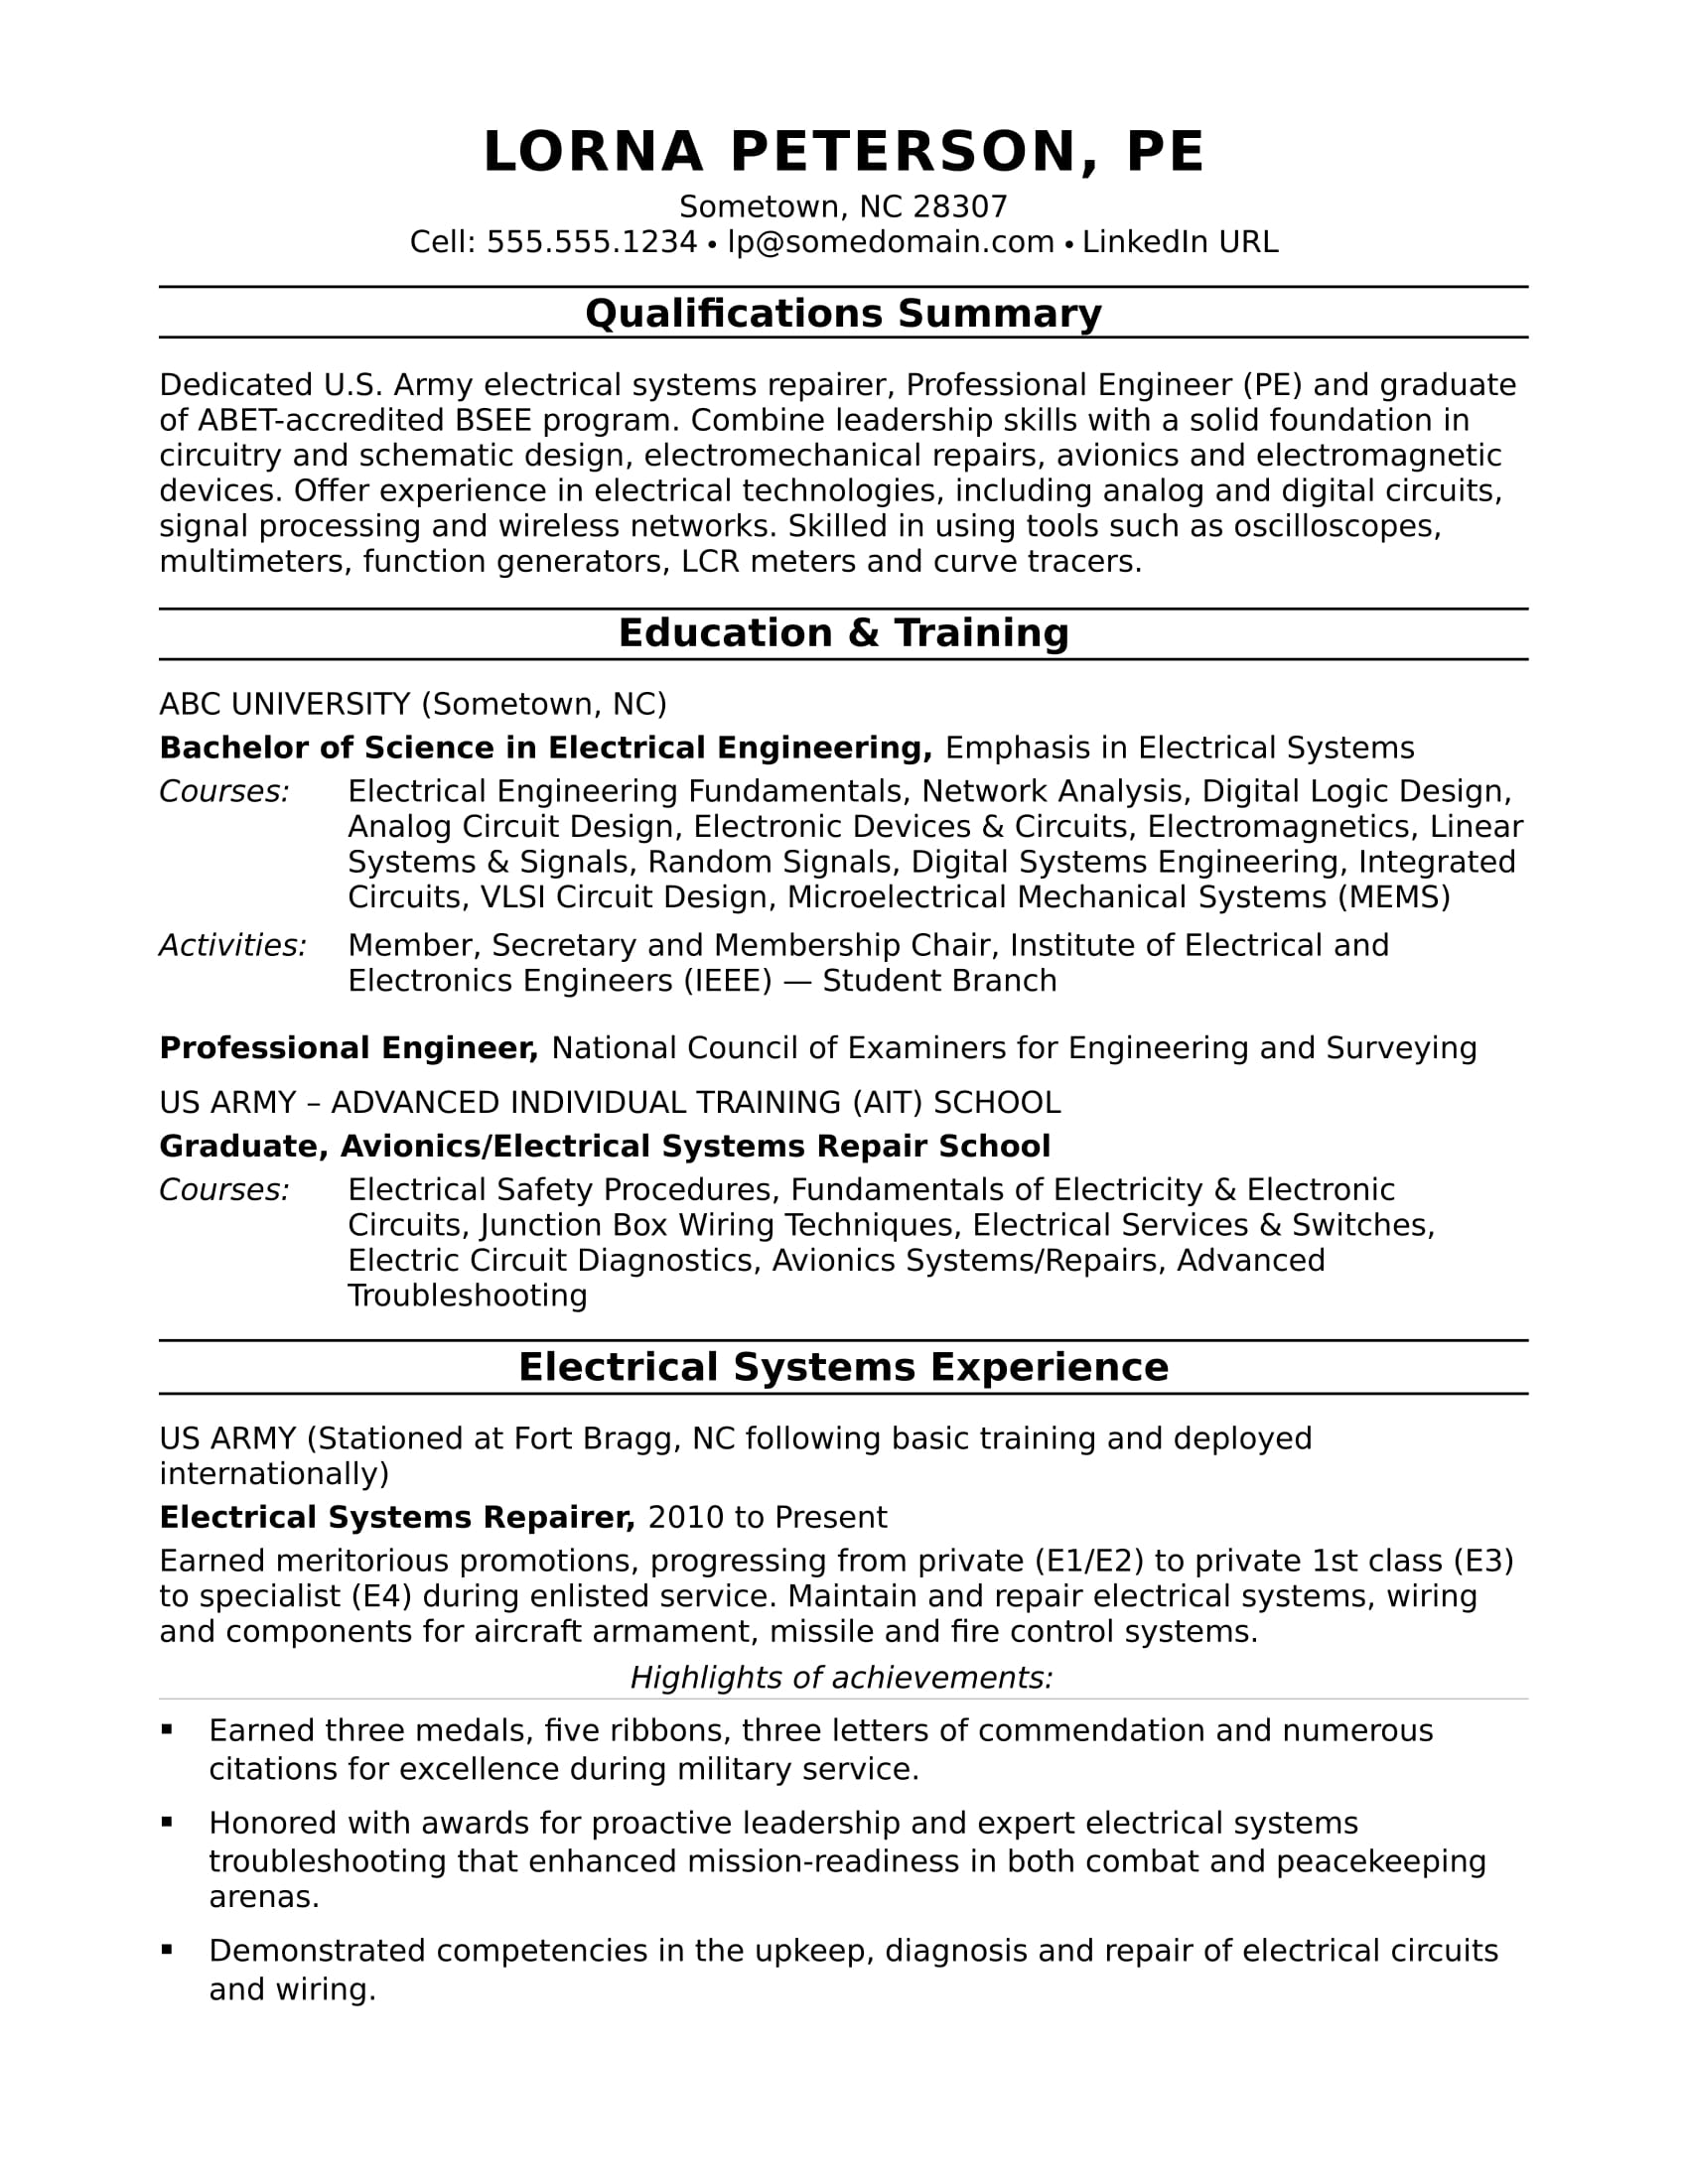 sample resume for midlevel electrical engineer monster title coach scam procter and Resume Resume Title For Electrical Engineer